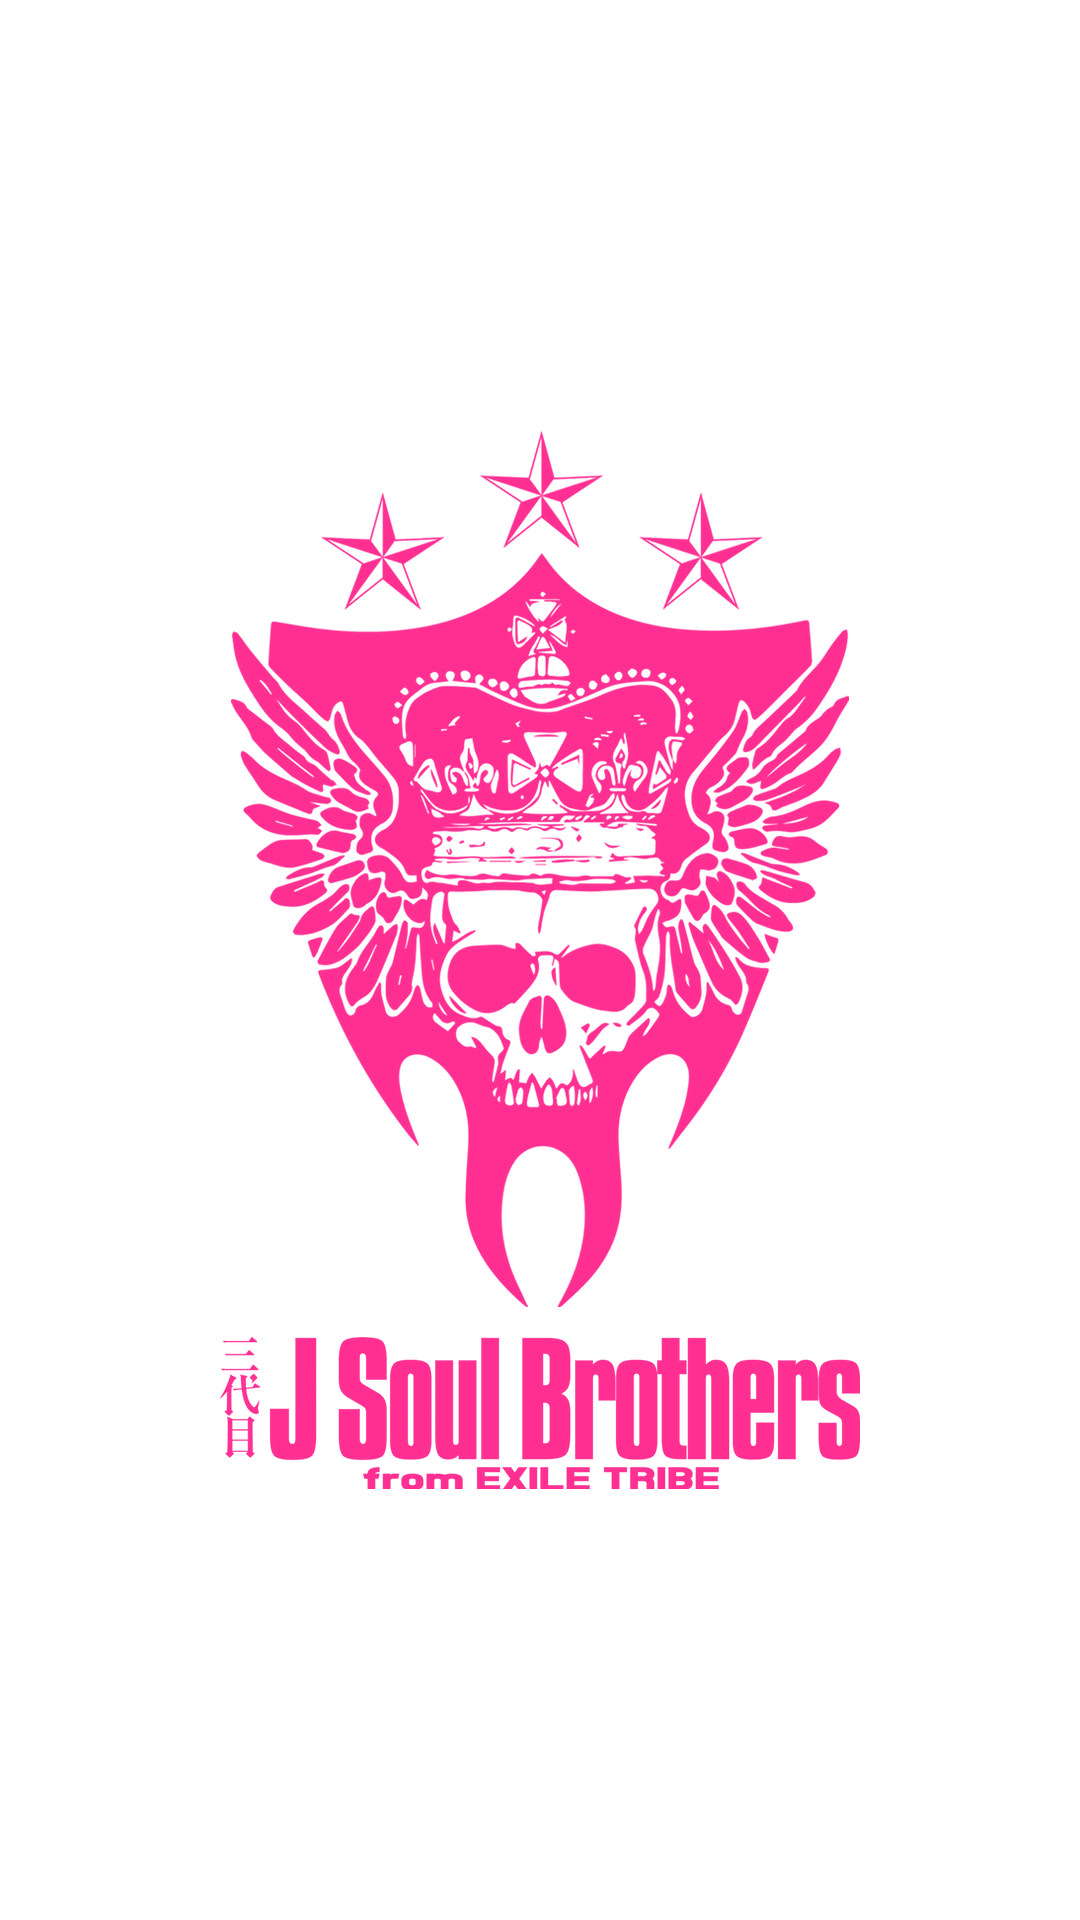 3jsb i06 - 三代目 J SOUL BROTHERSの高画質スマホ壁紙40枚 [iPhone&Androidに対応]